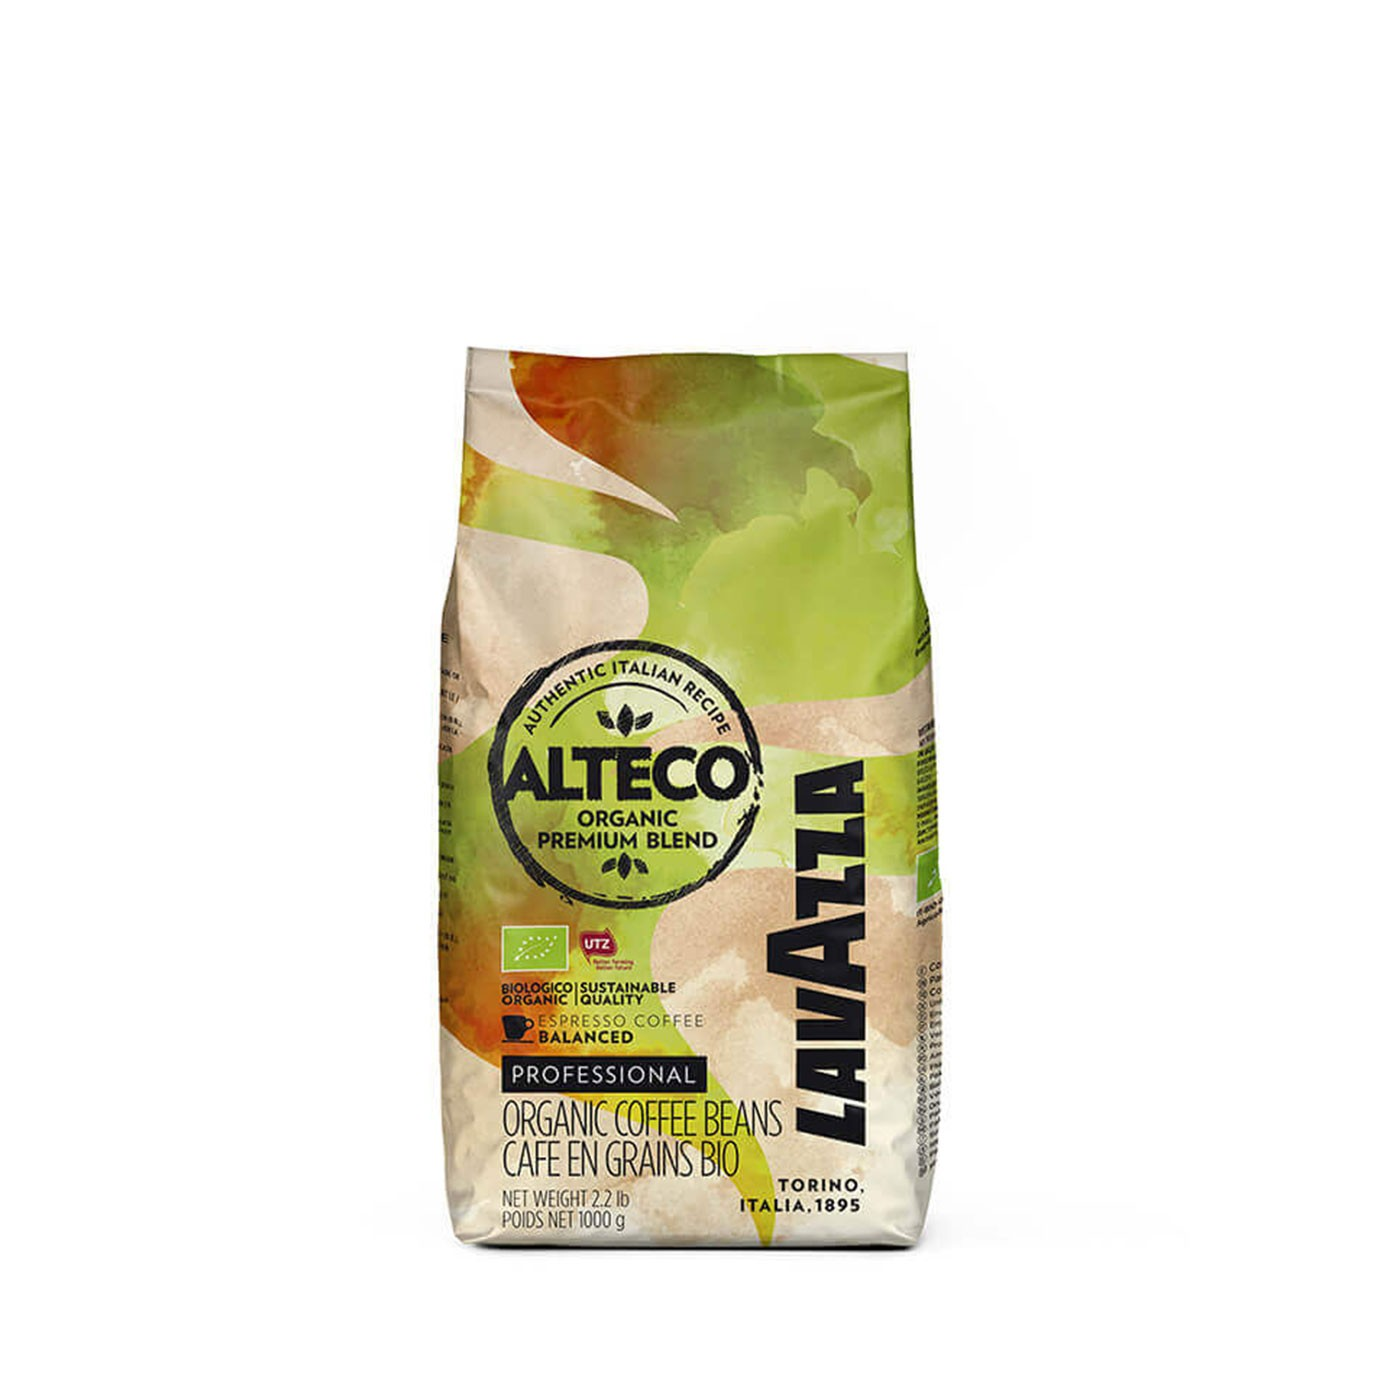 Organic Alteco Espresso Whole Beans 35.2 oz